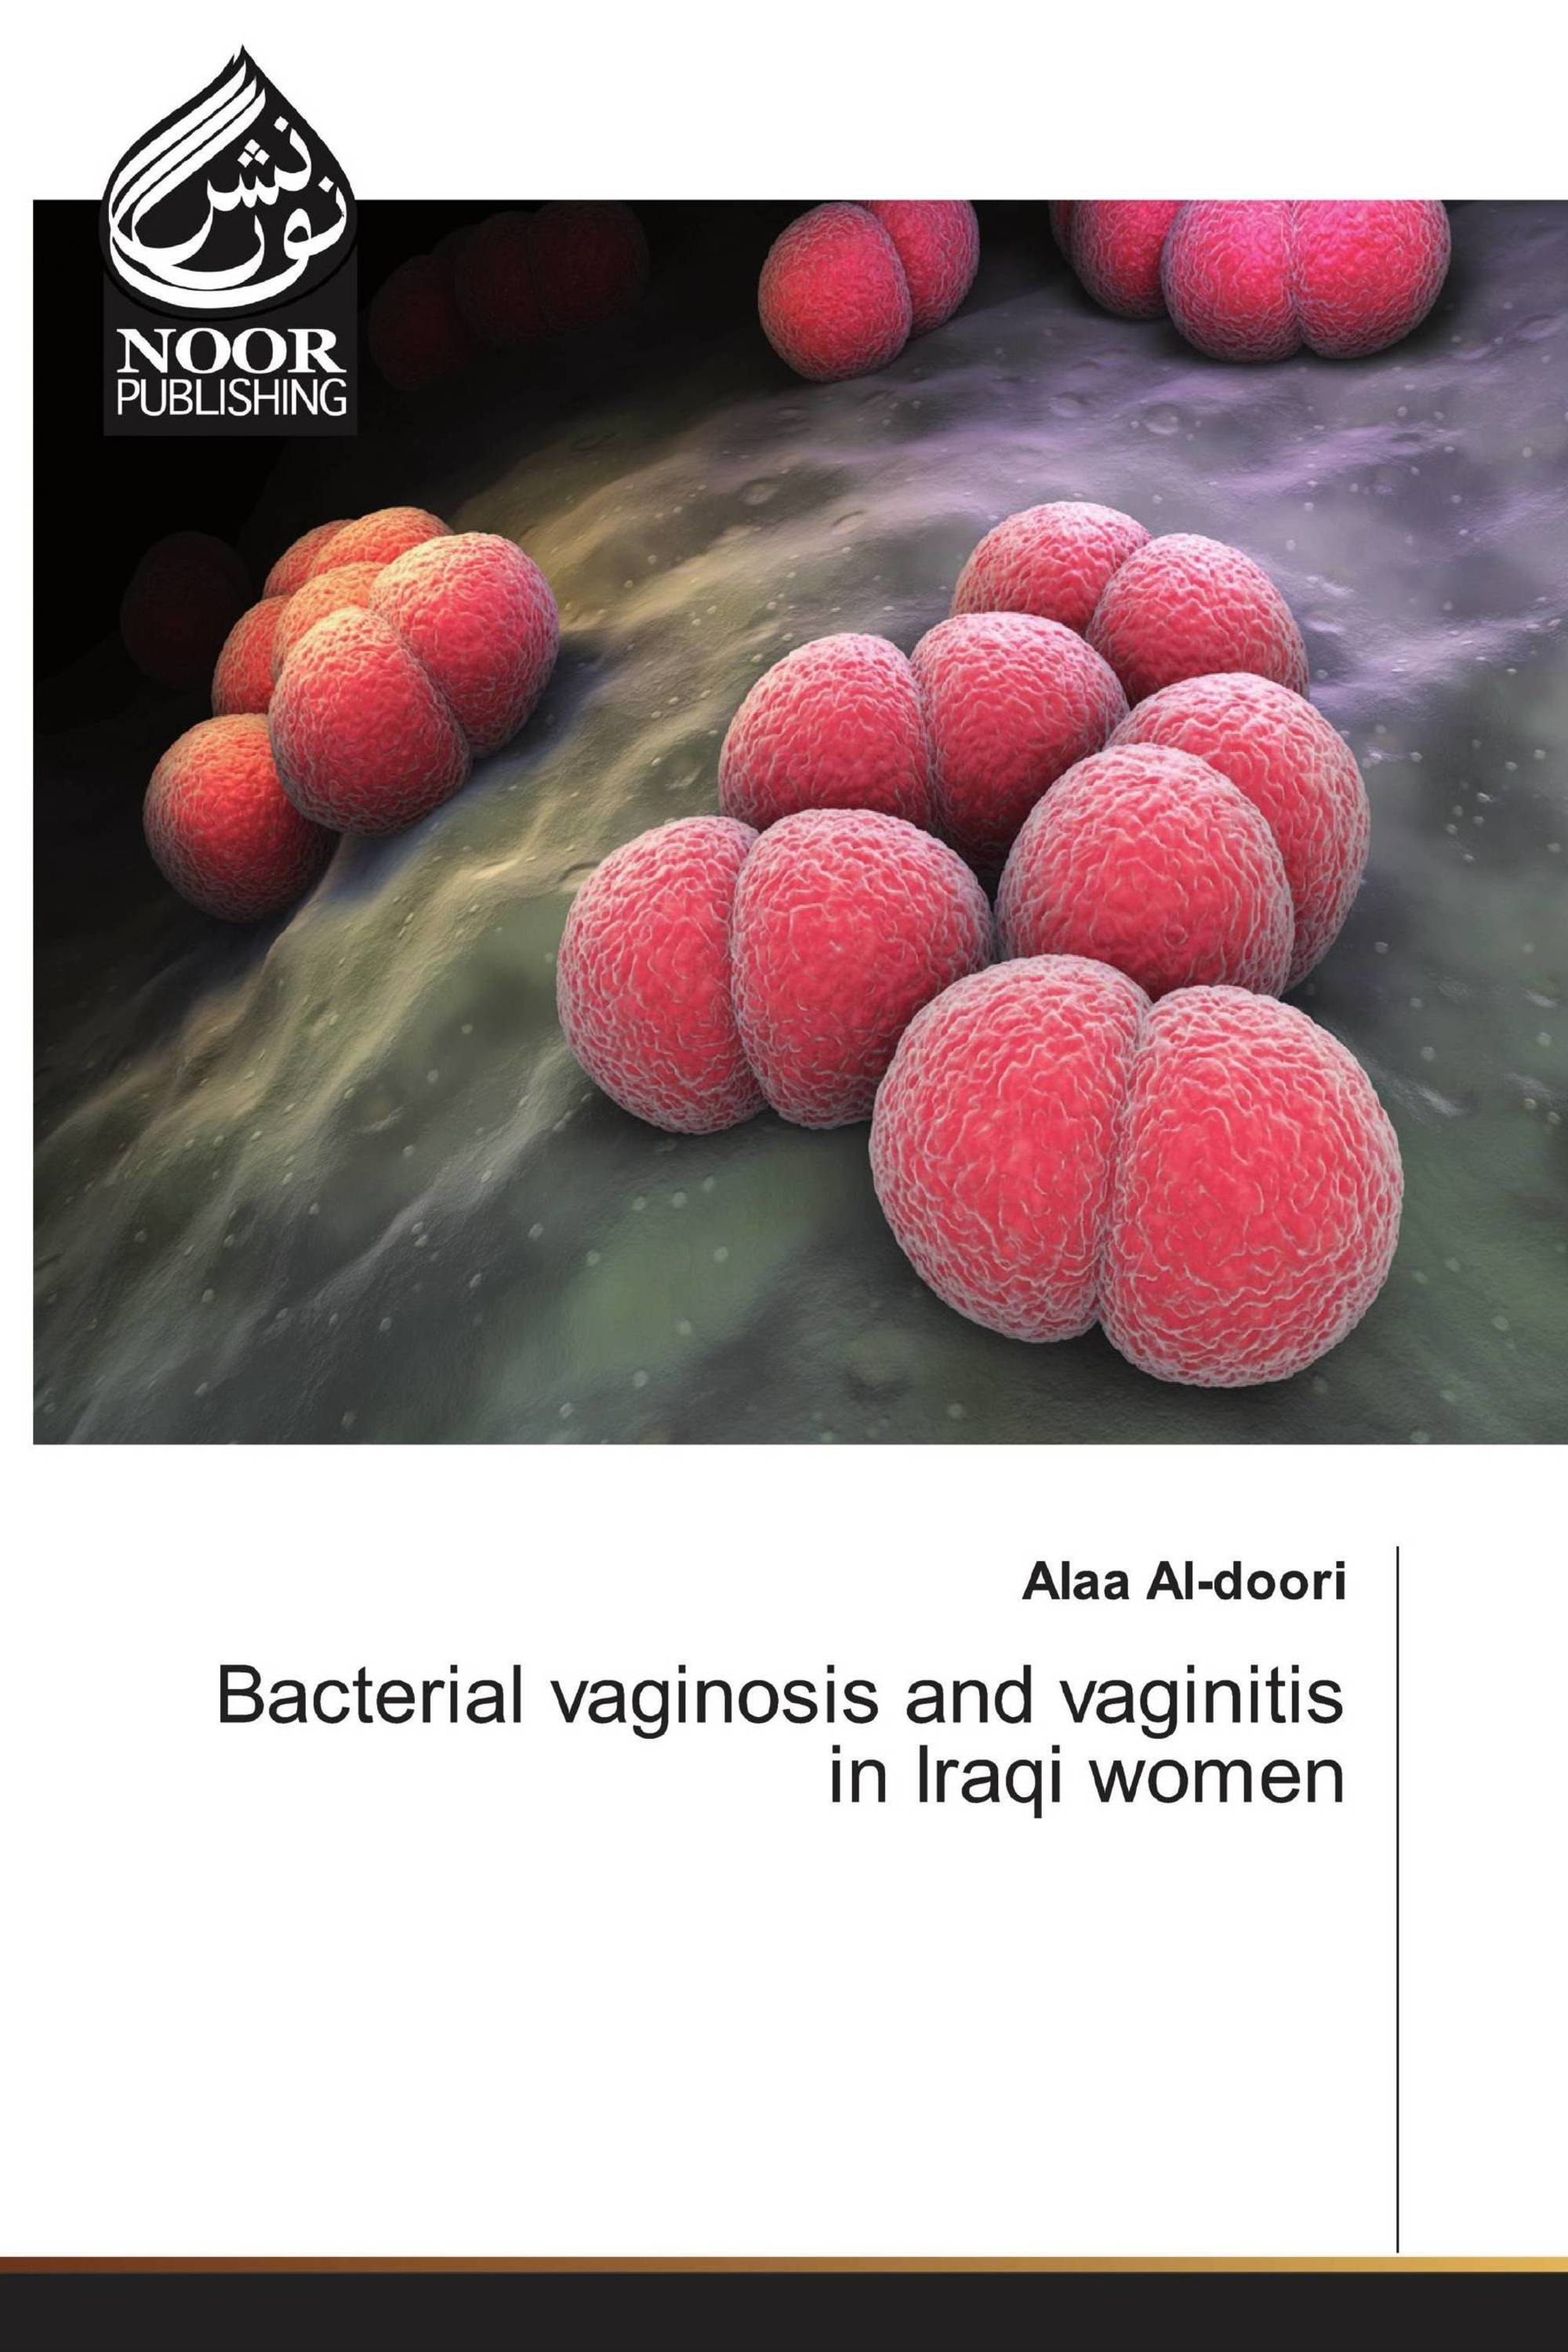 Bacterial vaginosis and vaginitis in Iraqi women